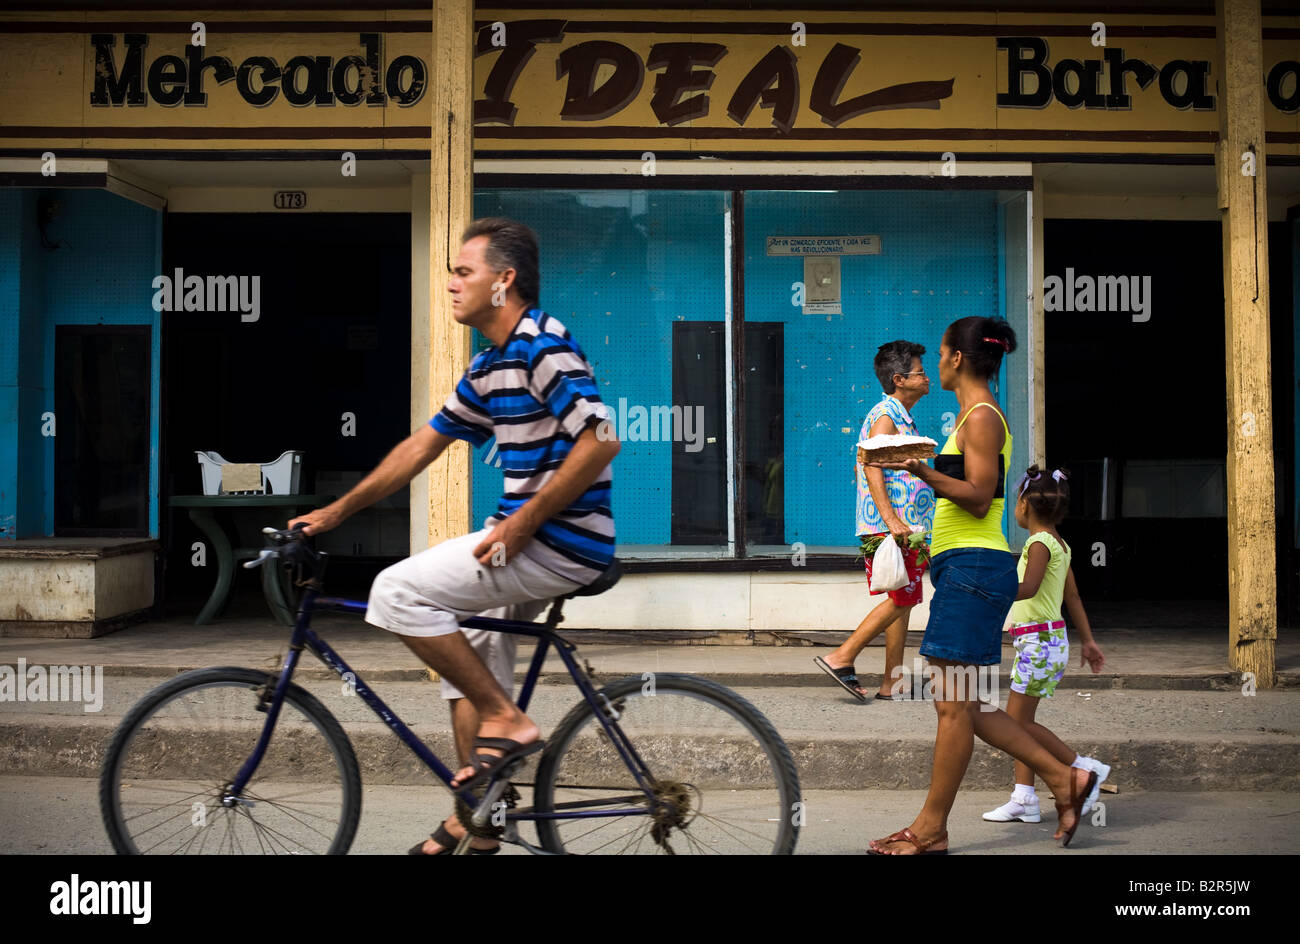 People go past a store with empty displays called Market Ideal in Baracoa Cuba - Stock Image